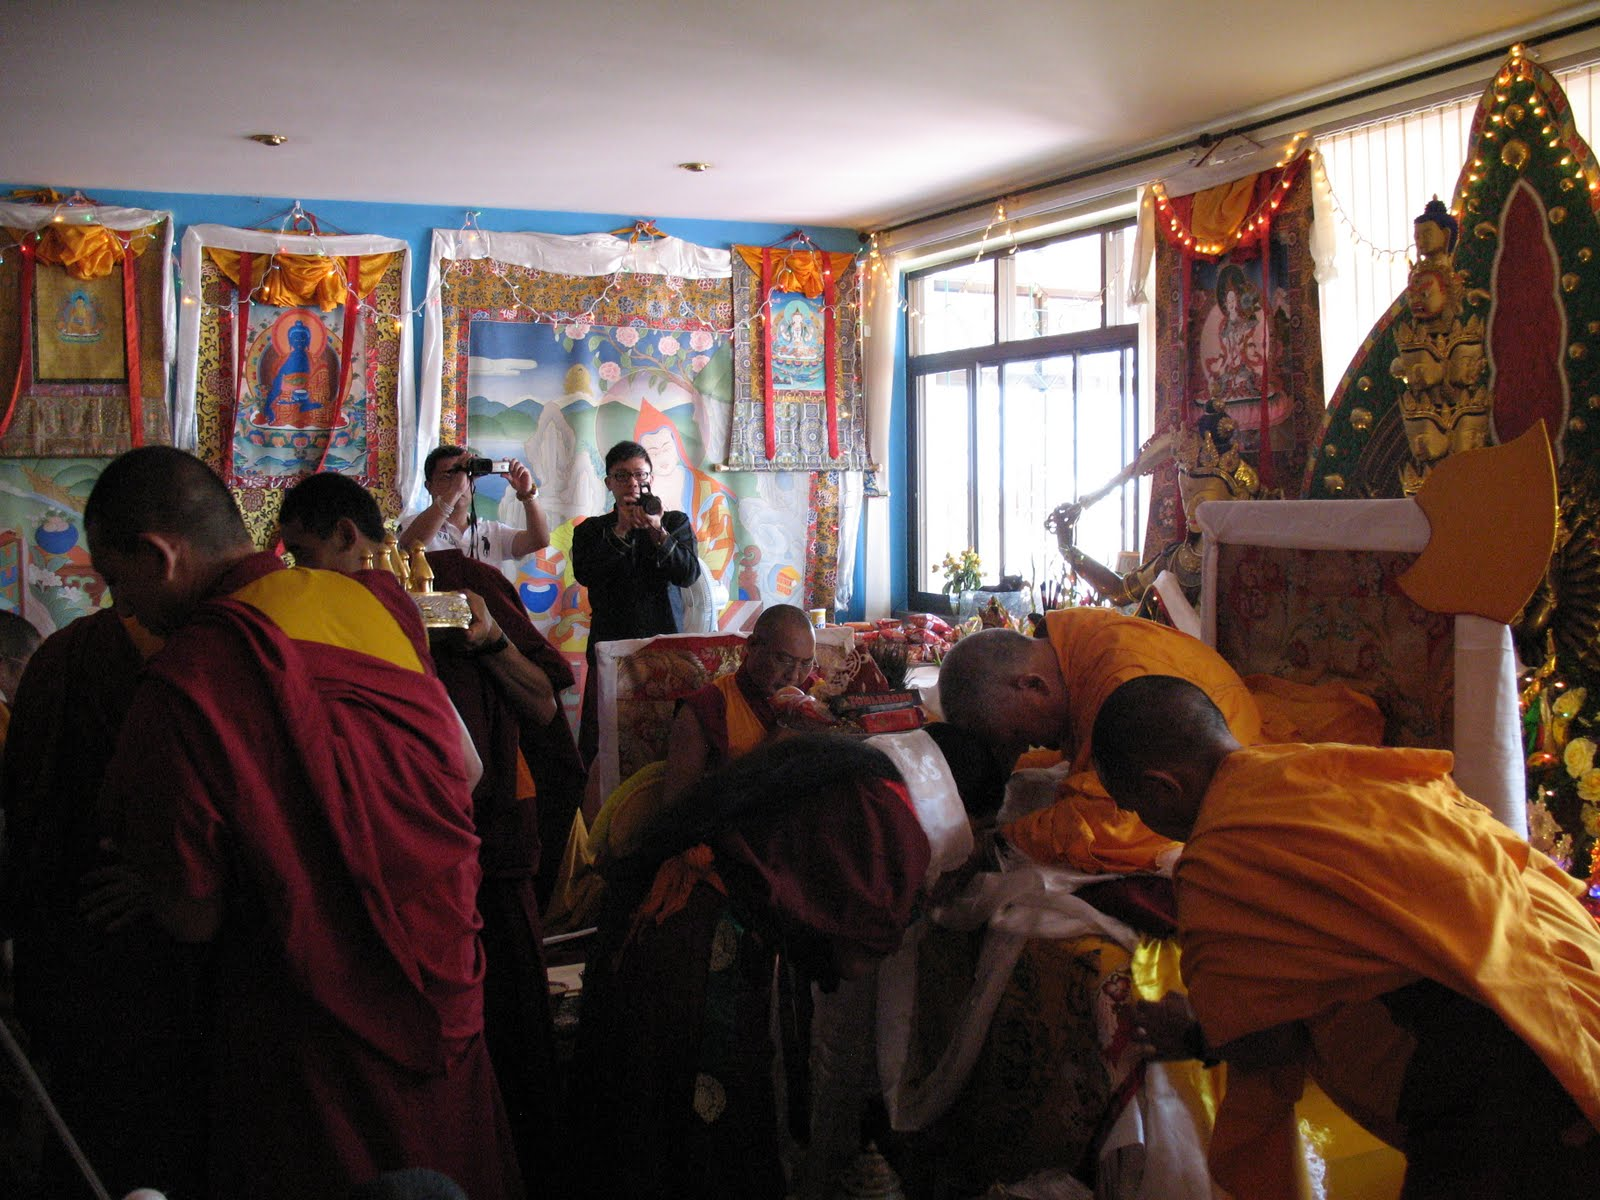 Khadro-la during special long life puja offered to Lama Zopa Rinpoche, Kopan Monastery, June 2009.